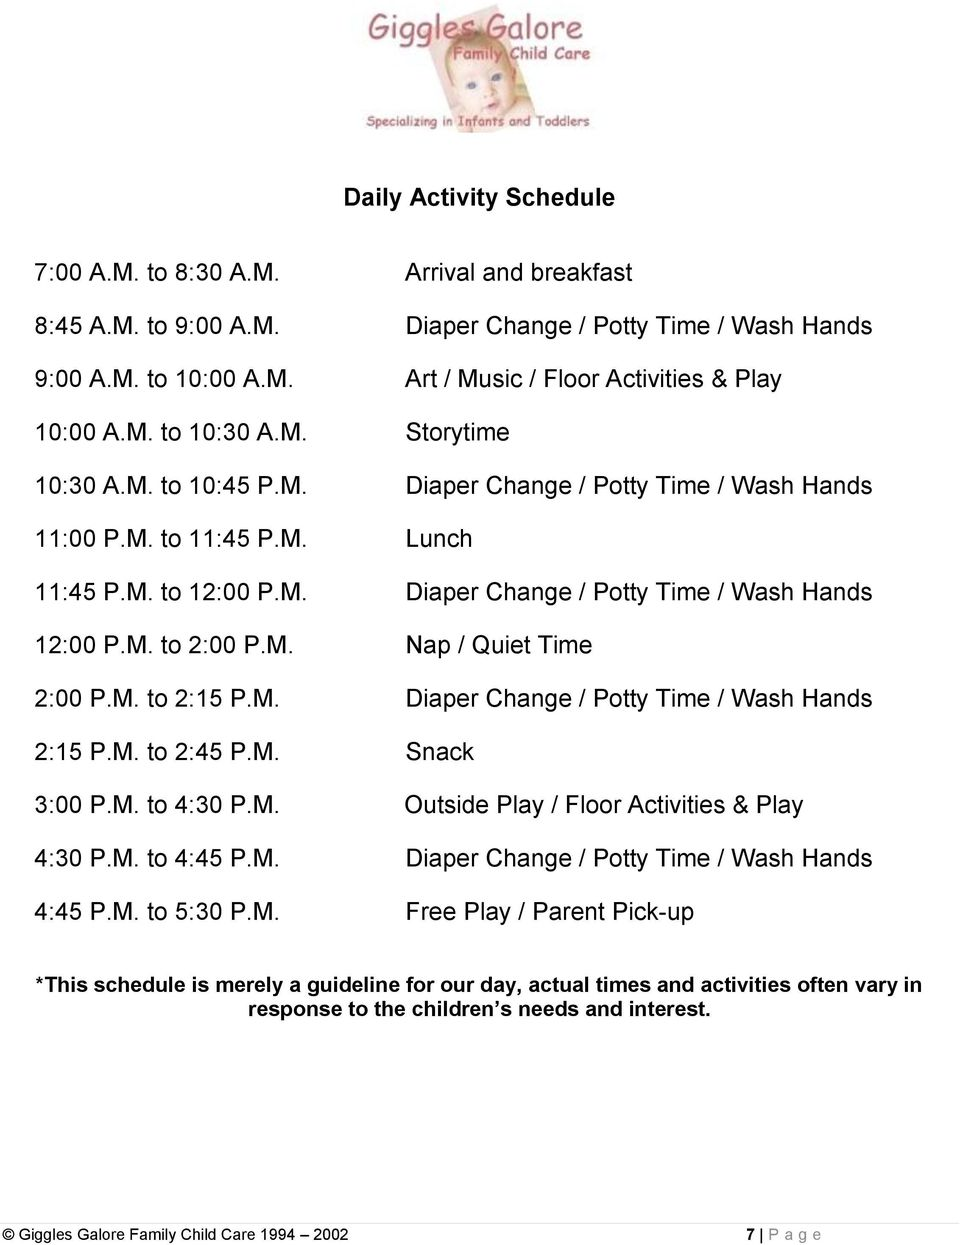 M. Nap / Quiet Time 2:00 P.M. to 2:15 P.M. Diaper Change / Potty Time / Wash Hands 2:15 P.M. to 2:45 P.M. Snack 3:00 P.M. to 4:30 P.M. Outside Play / Floor Activities & Play 4:30 P.M. to 4:45 P.M. Diaper Change / Potty Time / Wash Hands 4:45 P.